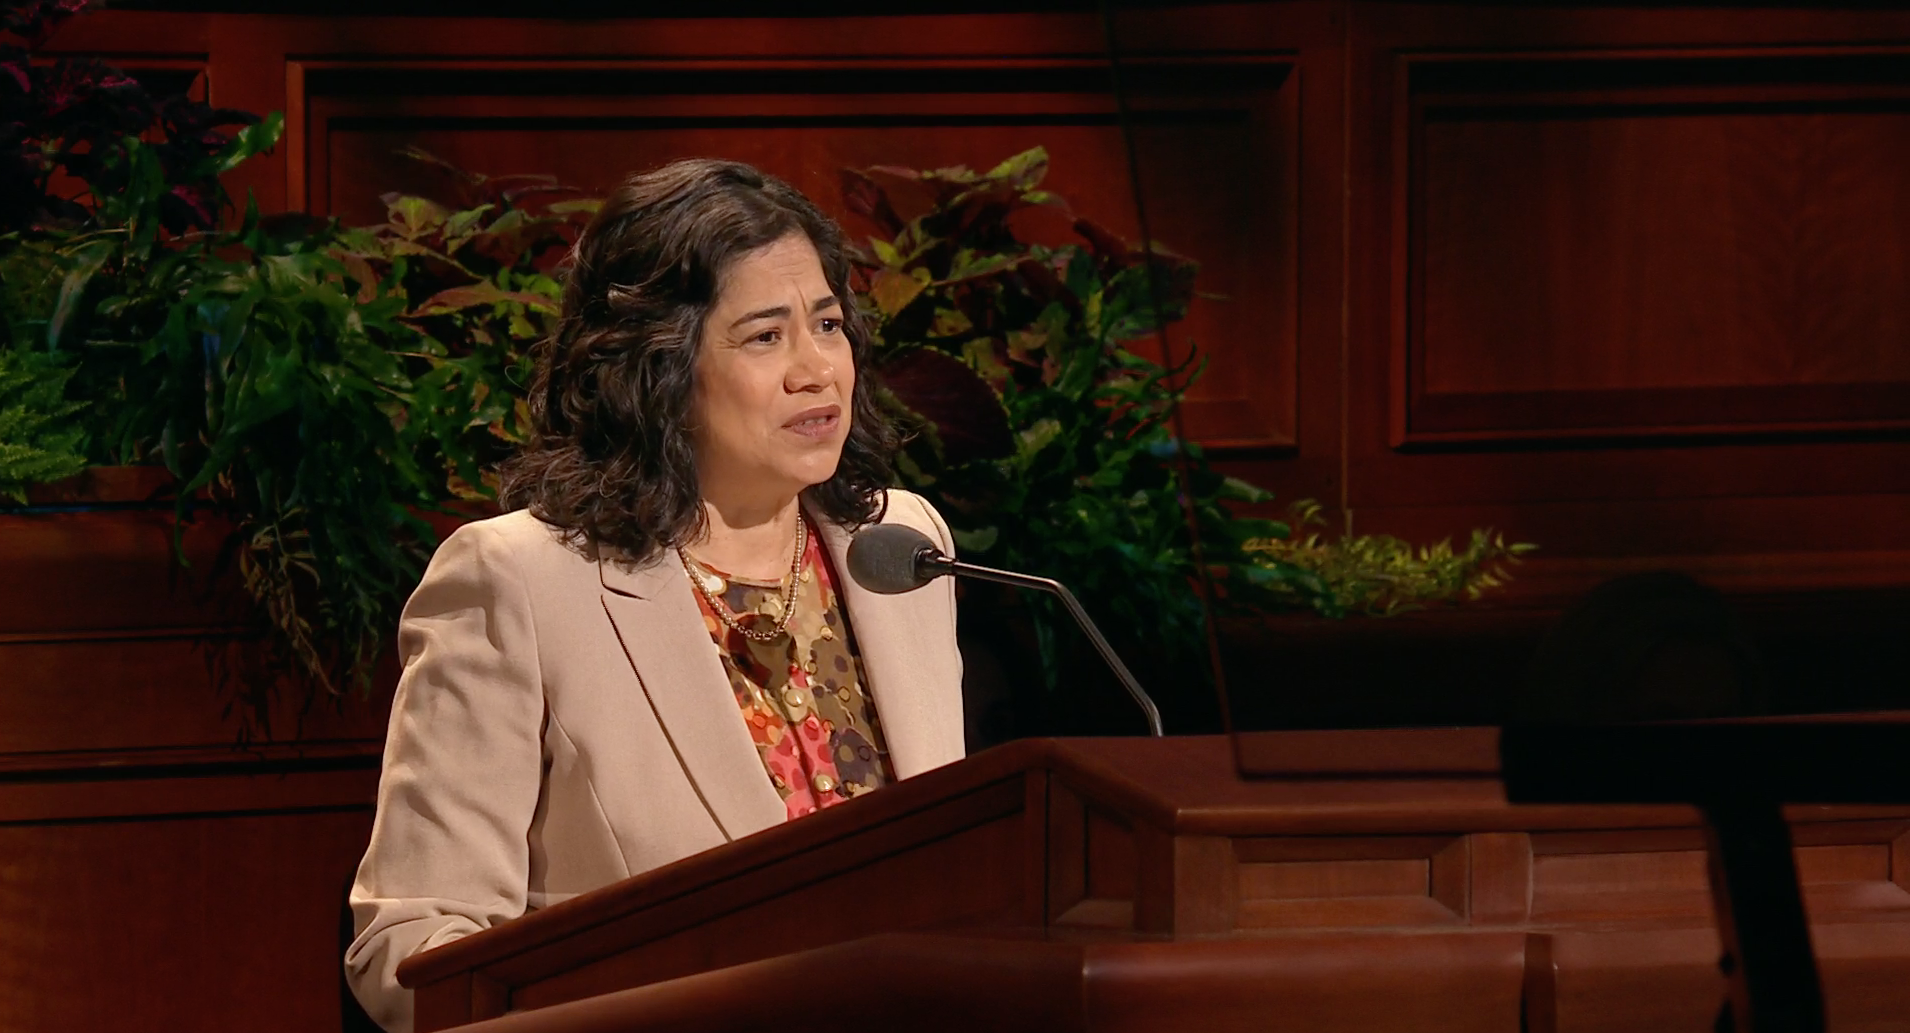 Sister Reyna I. Aburto, second counselor in the Relief Society general presidency, speaks during the general women's session in the 189th Semiannual General Conference of the Church on Oct. 5, 2019.